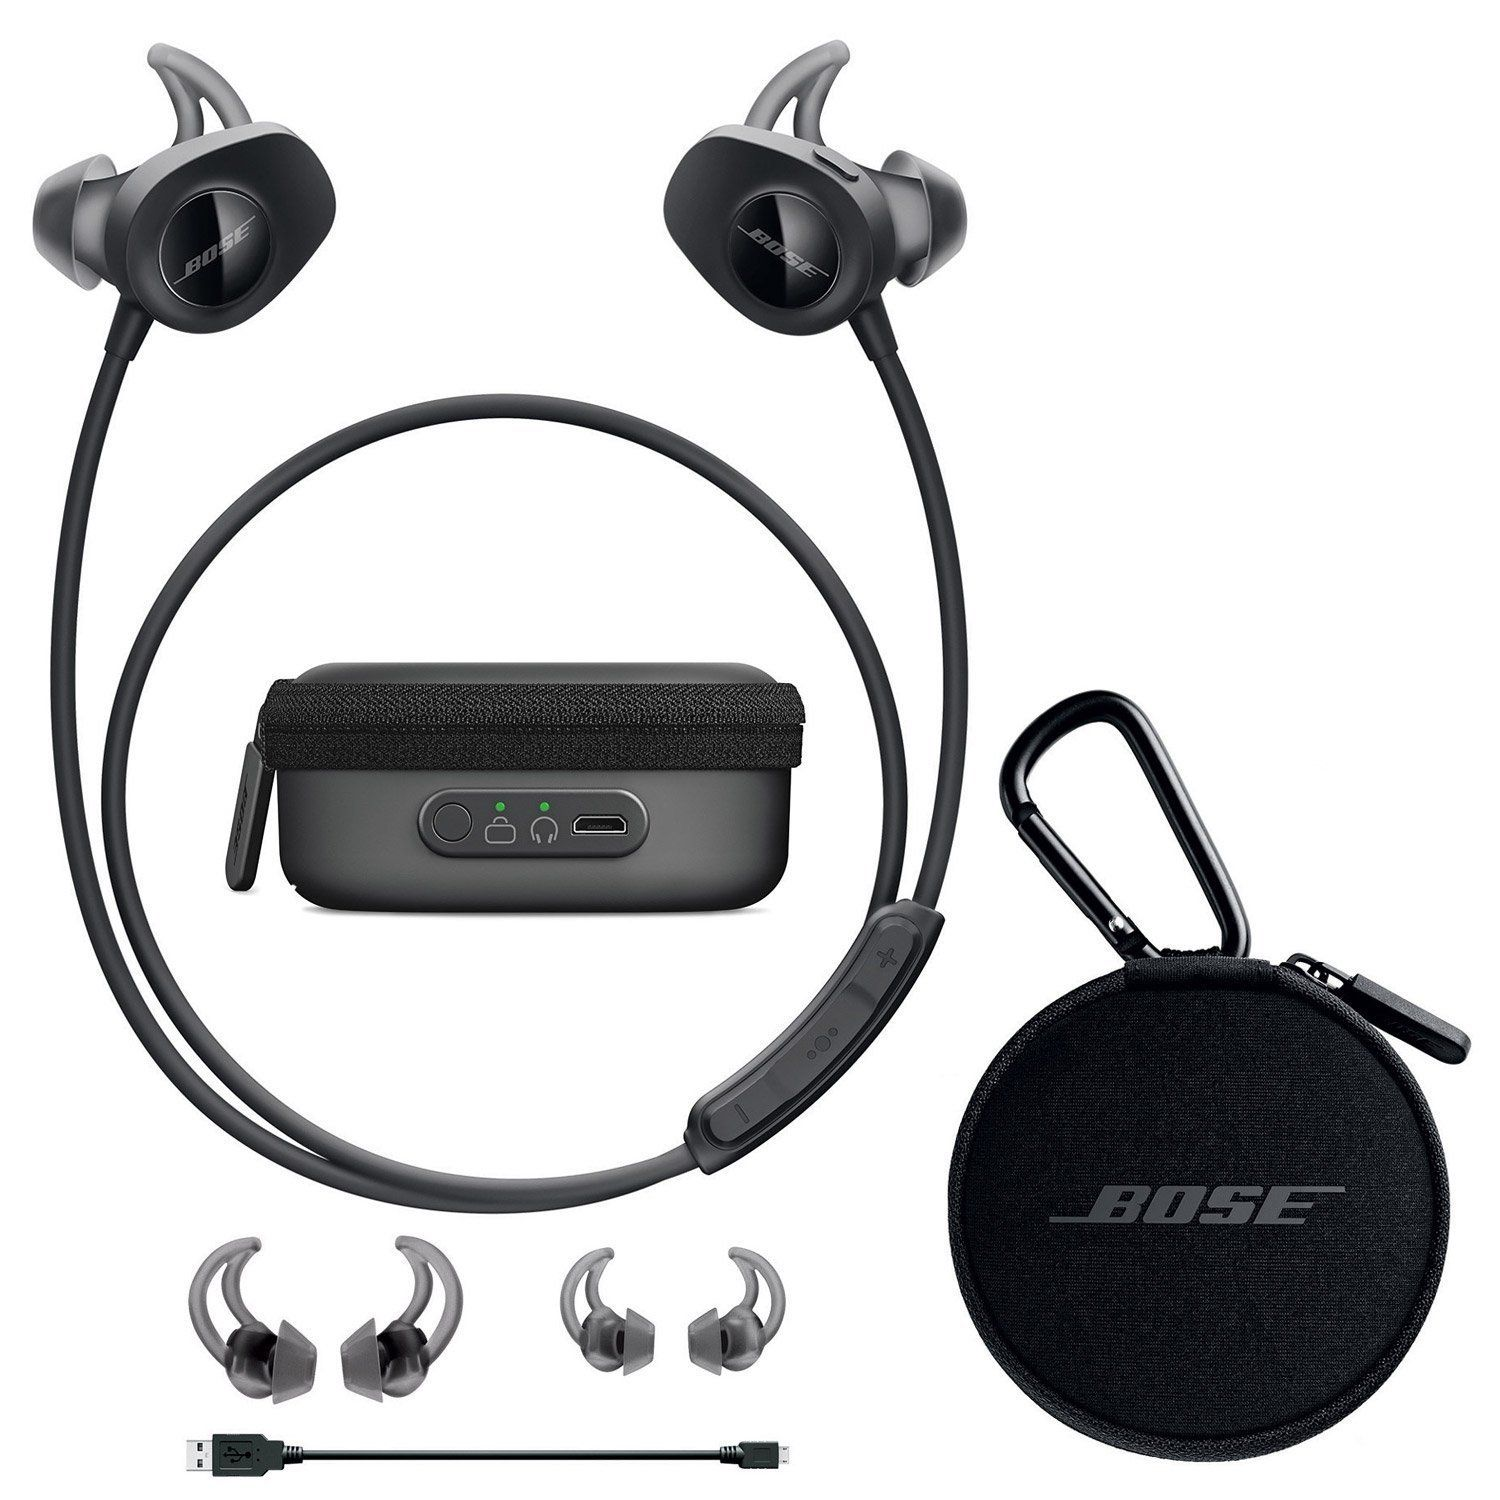 1011132ef2230f102873d5026dc034d1 bose soundsport wireless in ear headphones black & charging case bose soundsport earbuds wiring diagram at n-0.co